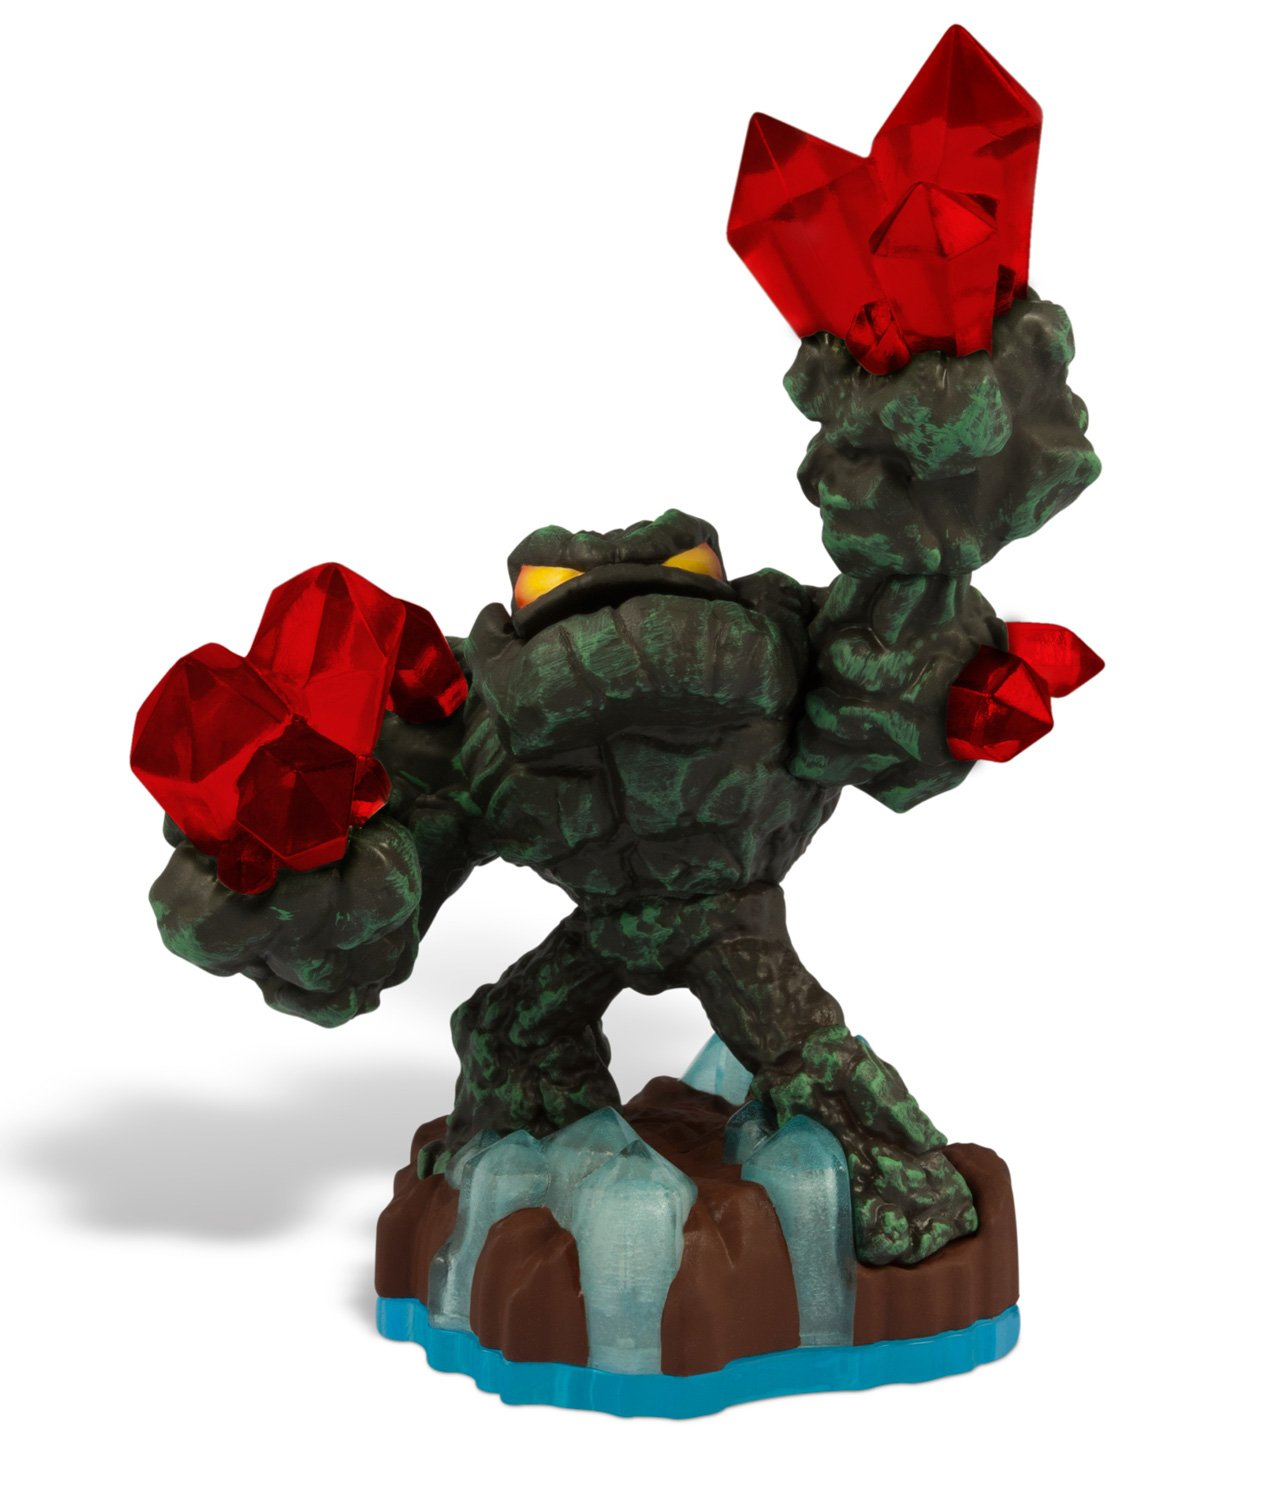 Skylanders SWAP Force: Hyper Beam Prism Break Character